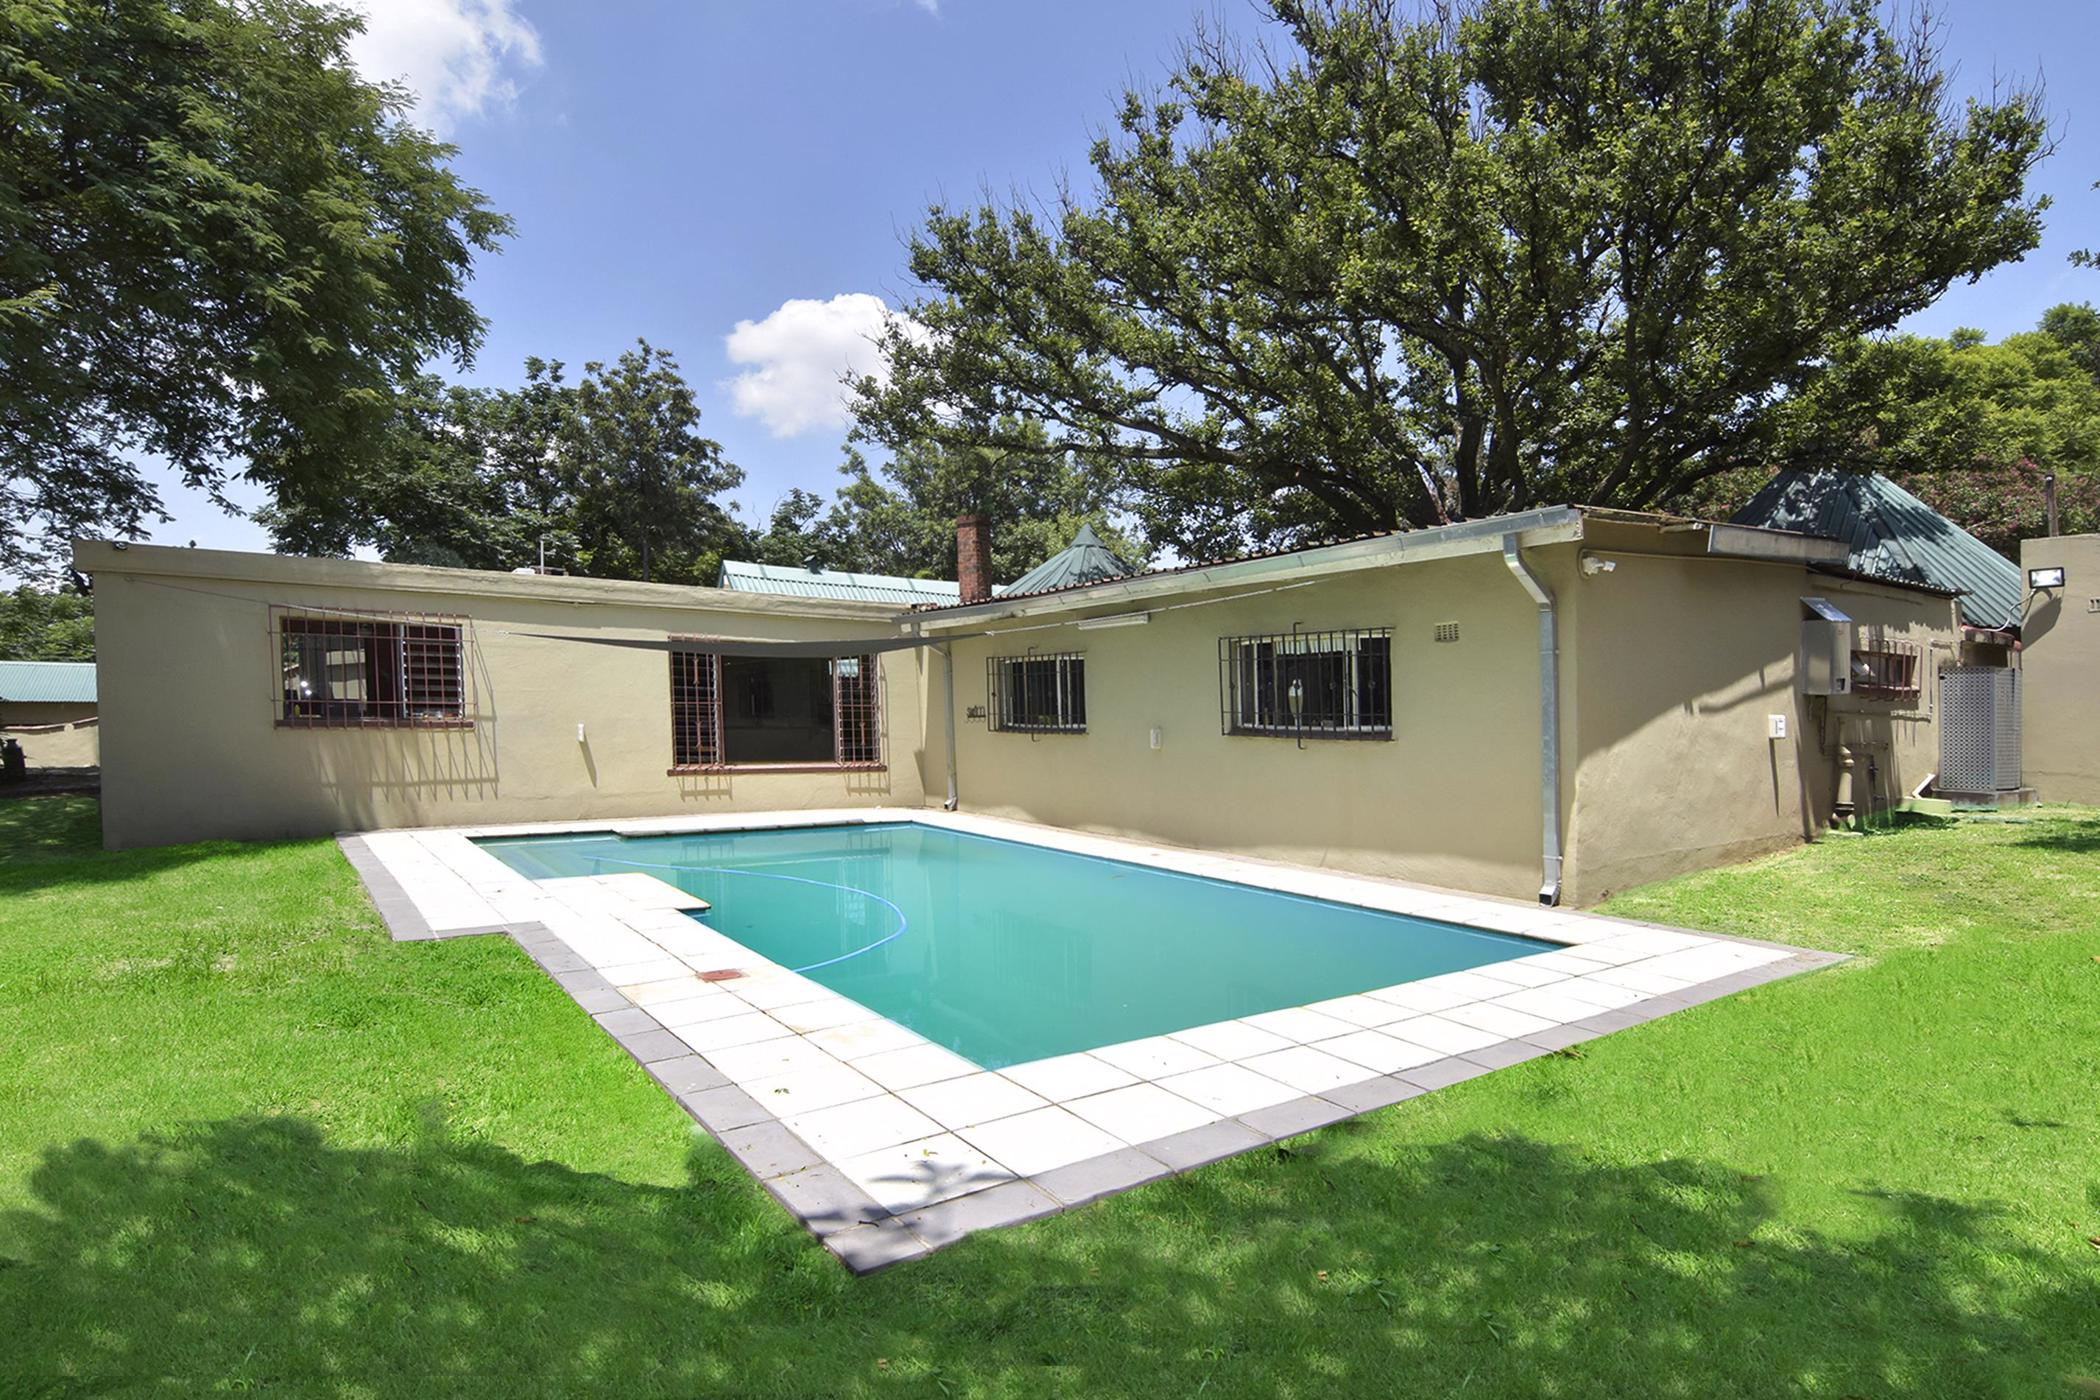 4 bedroom house for sale in Sun Valley (Midrand)